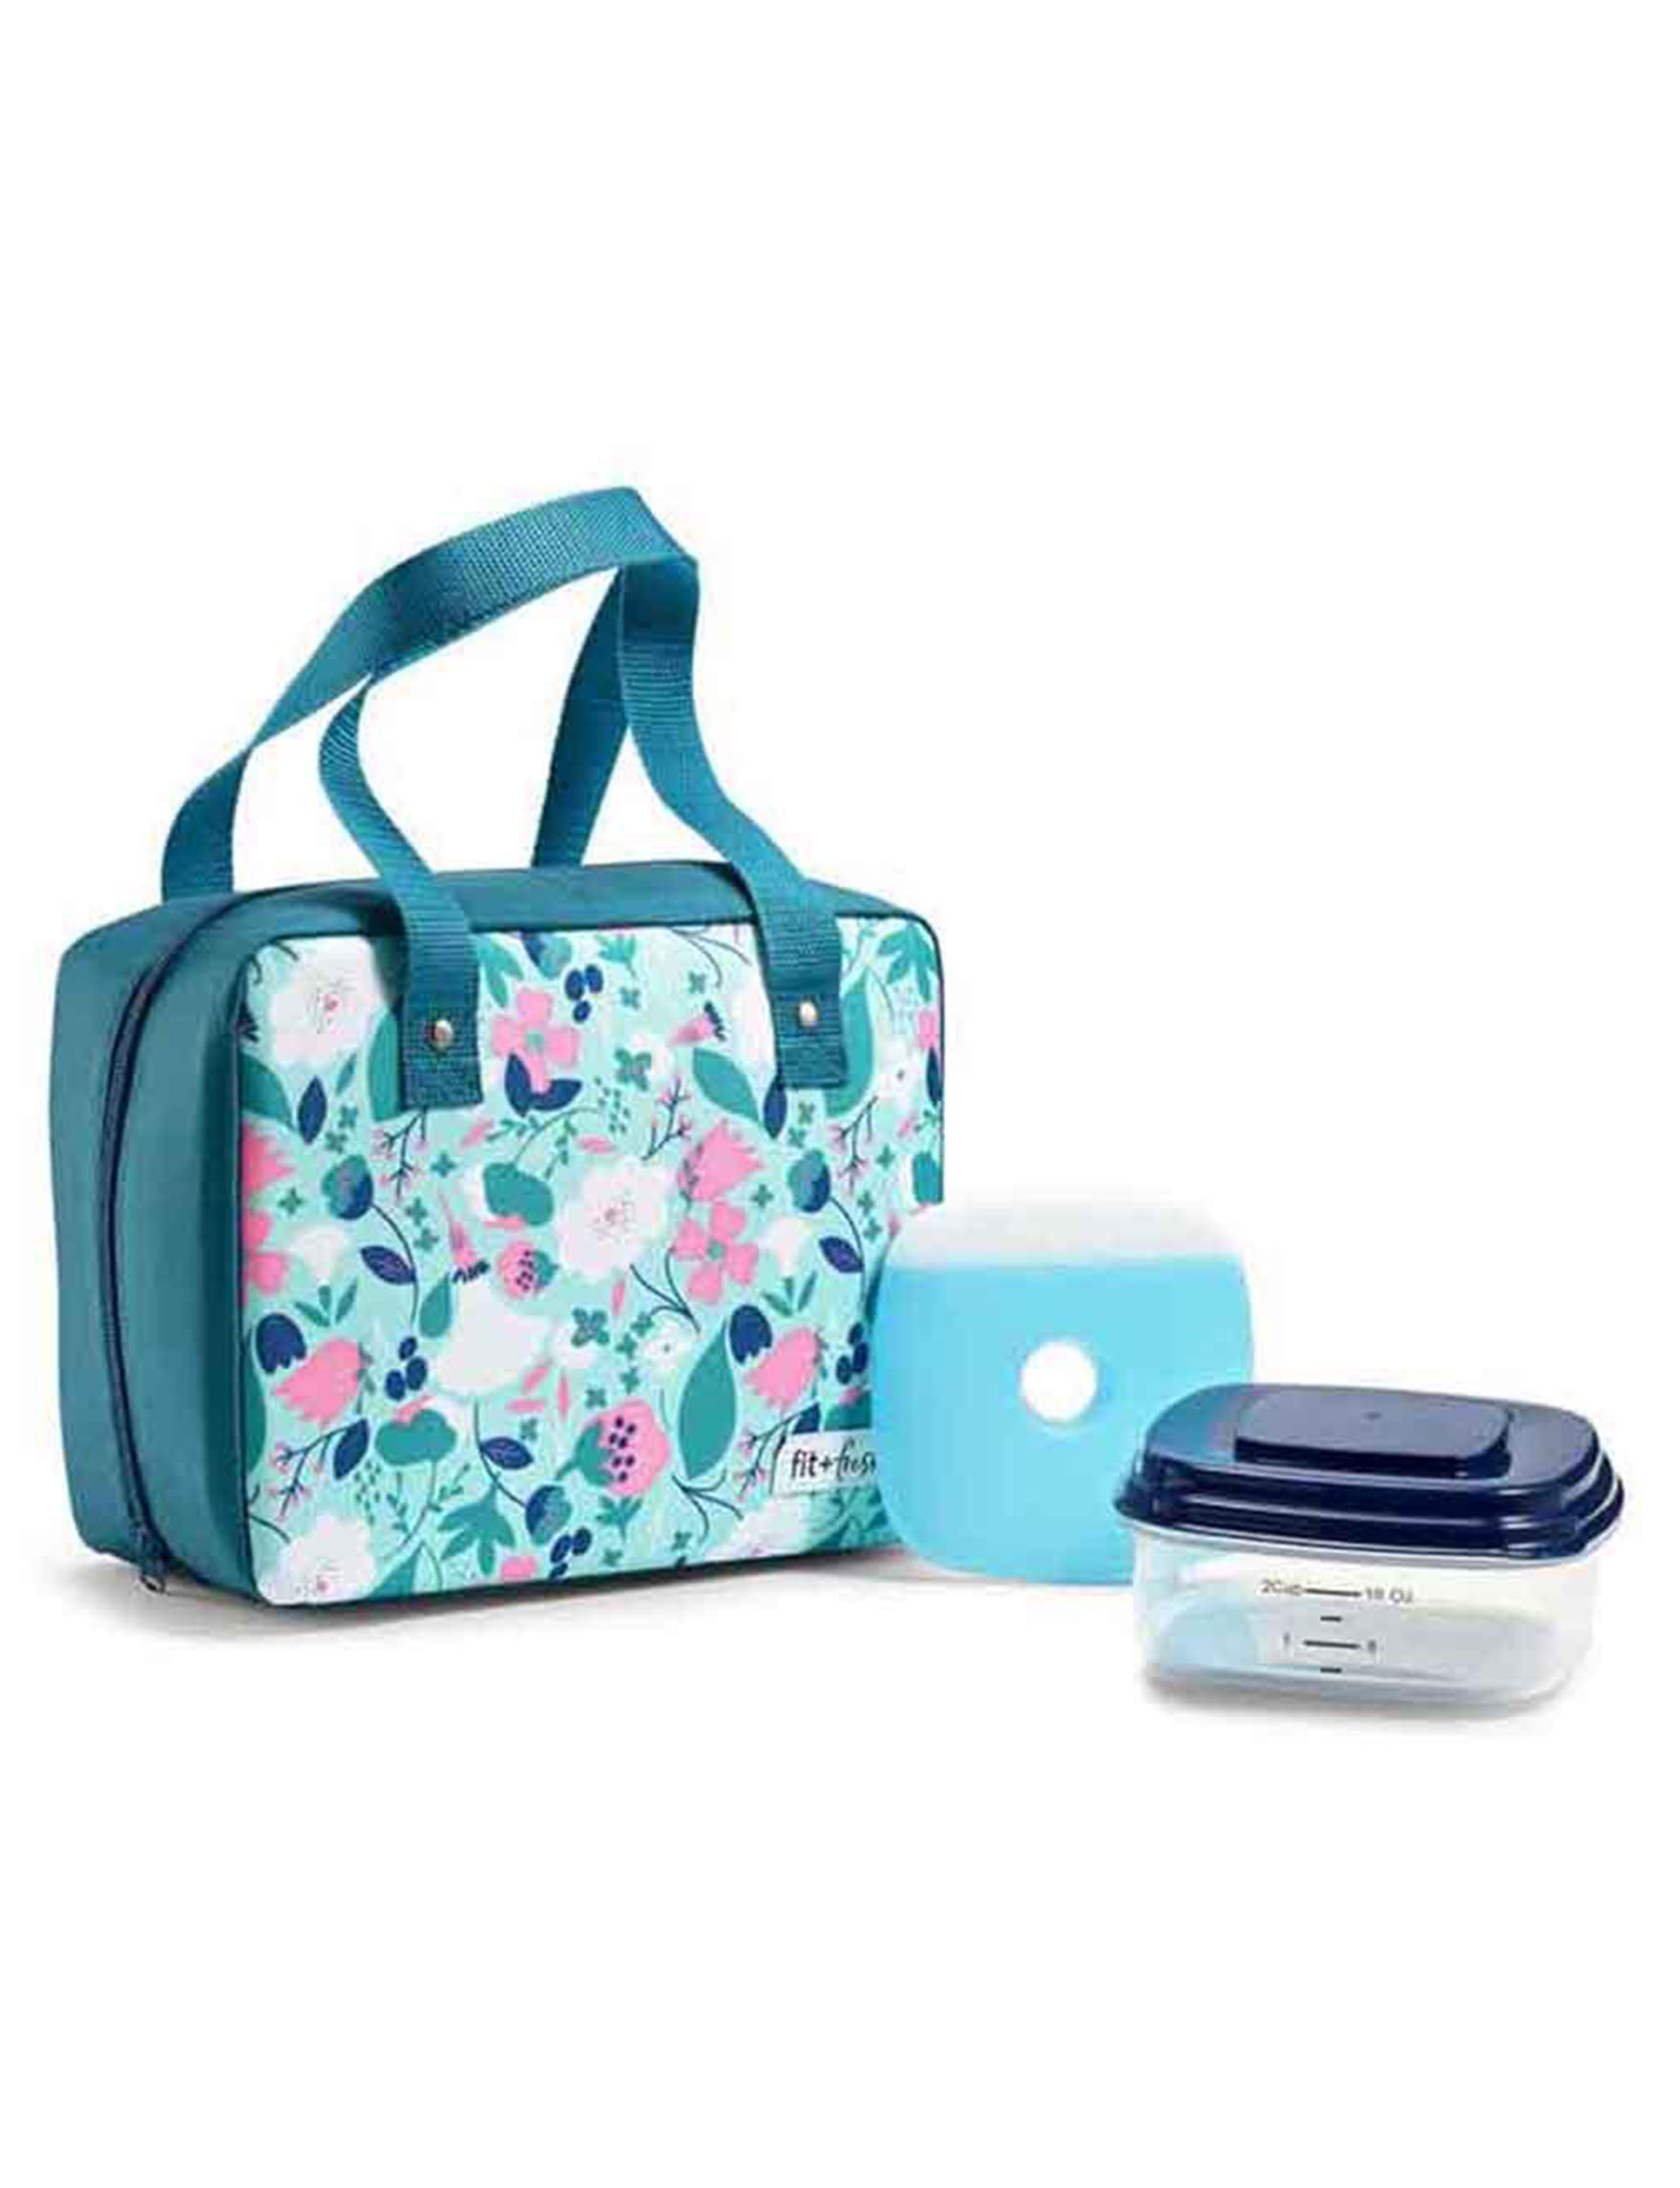 Fit & Fresh Blue Floral Lunch Boxes & Bags Monogram Kitchen Storage & Organization